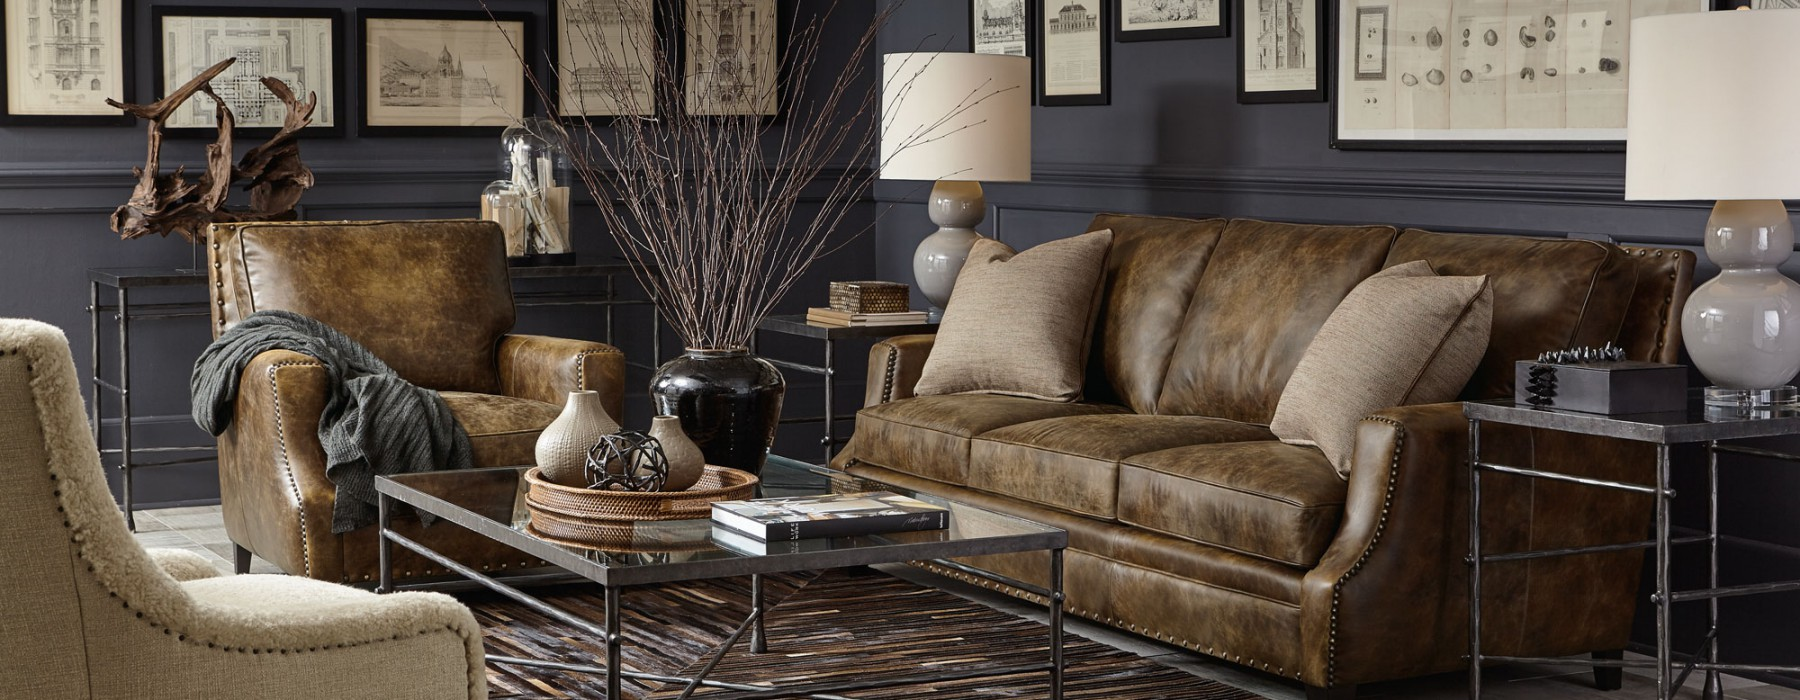 furniture design trends. The 5 Interior Design Trends You Should Know For Fall (and 4 It\u0027s Time Furniture I